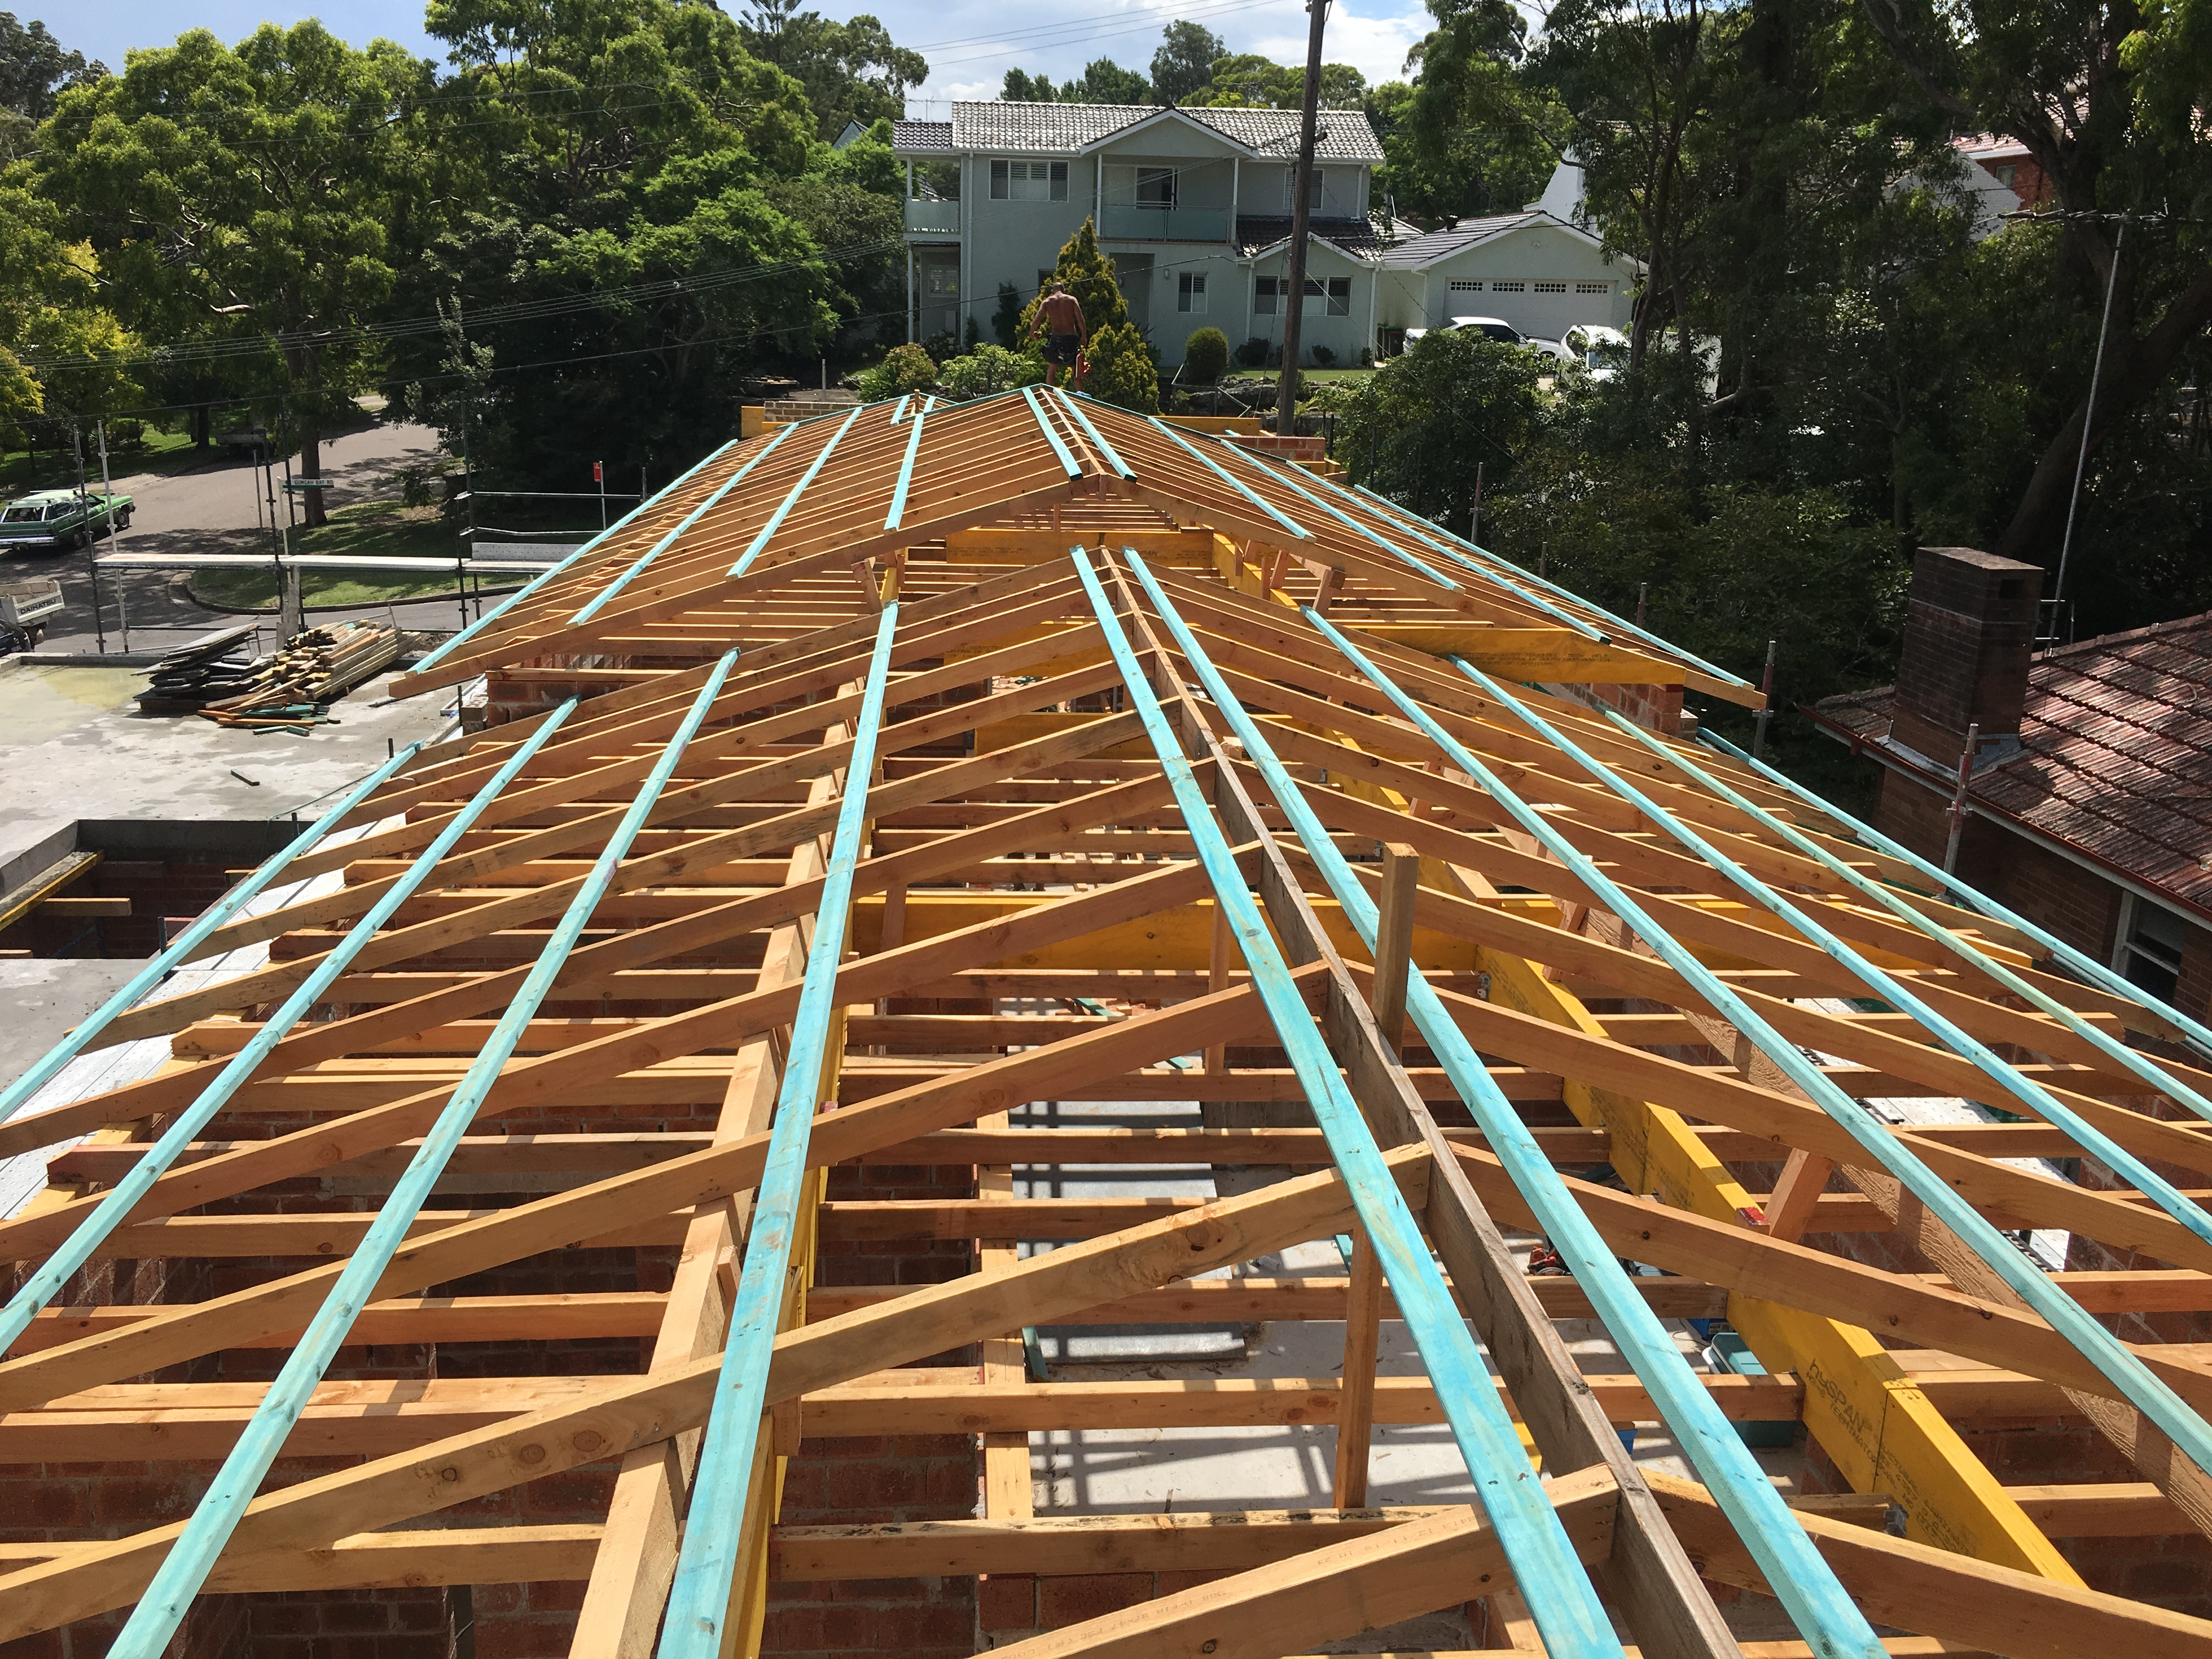 CCC_Frame_Roof_Carpentry_Building_02